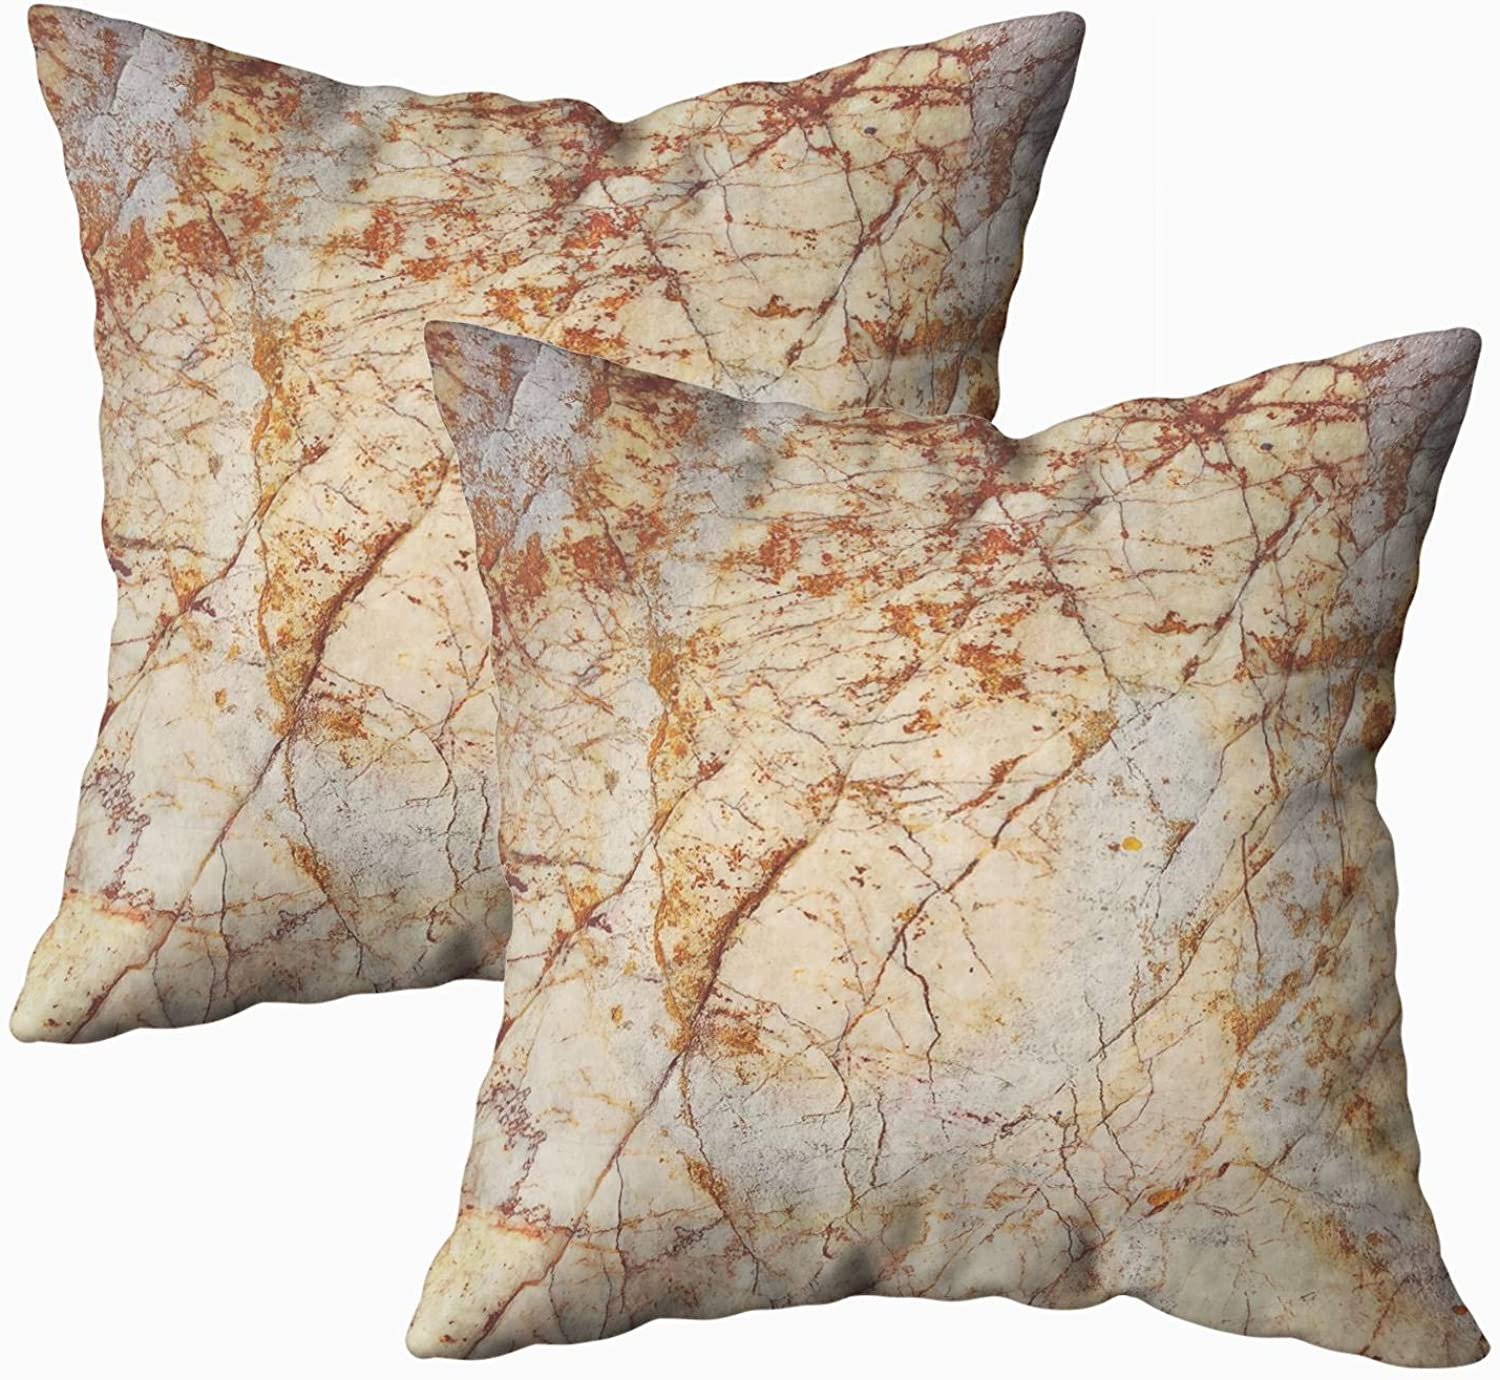 Yecationy Throw Pillows, Square Lumbar Pillow Cover color Abstract Natural Marble Patterned Texture Background Home Decorative Pillow Covers 18X18 Pillow Cases,2PCS